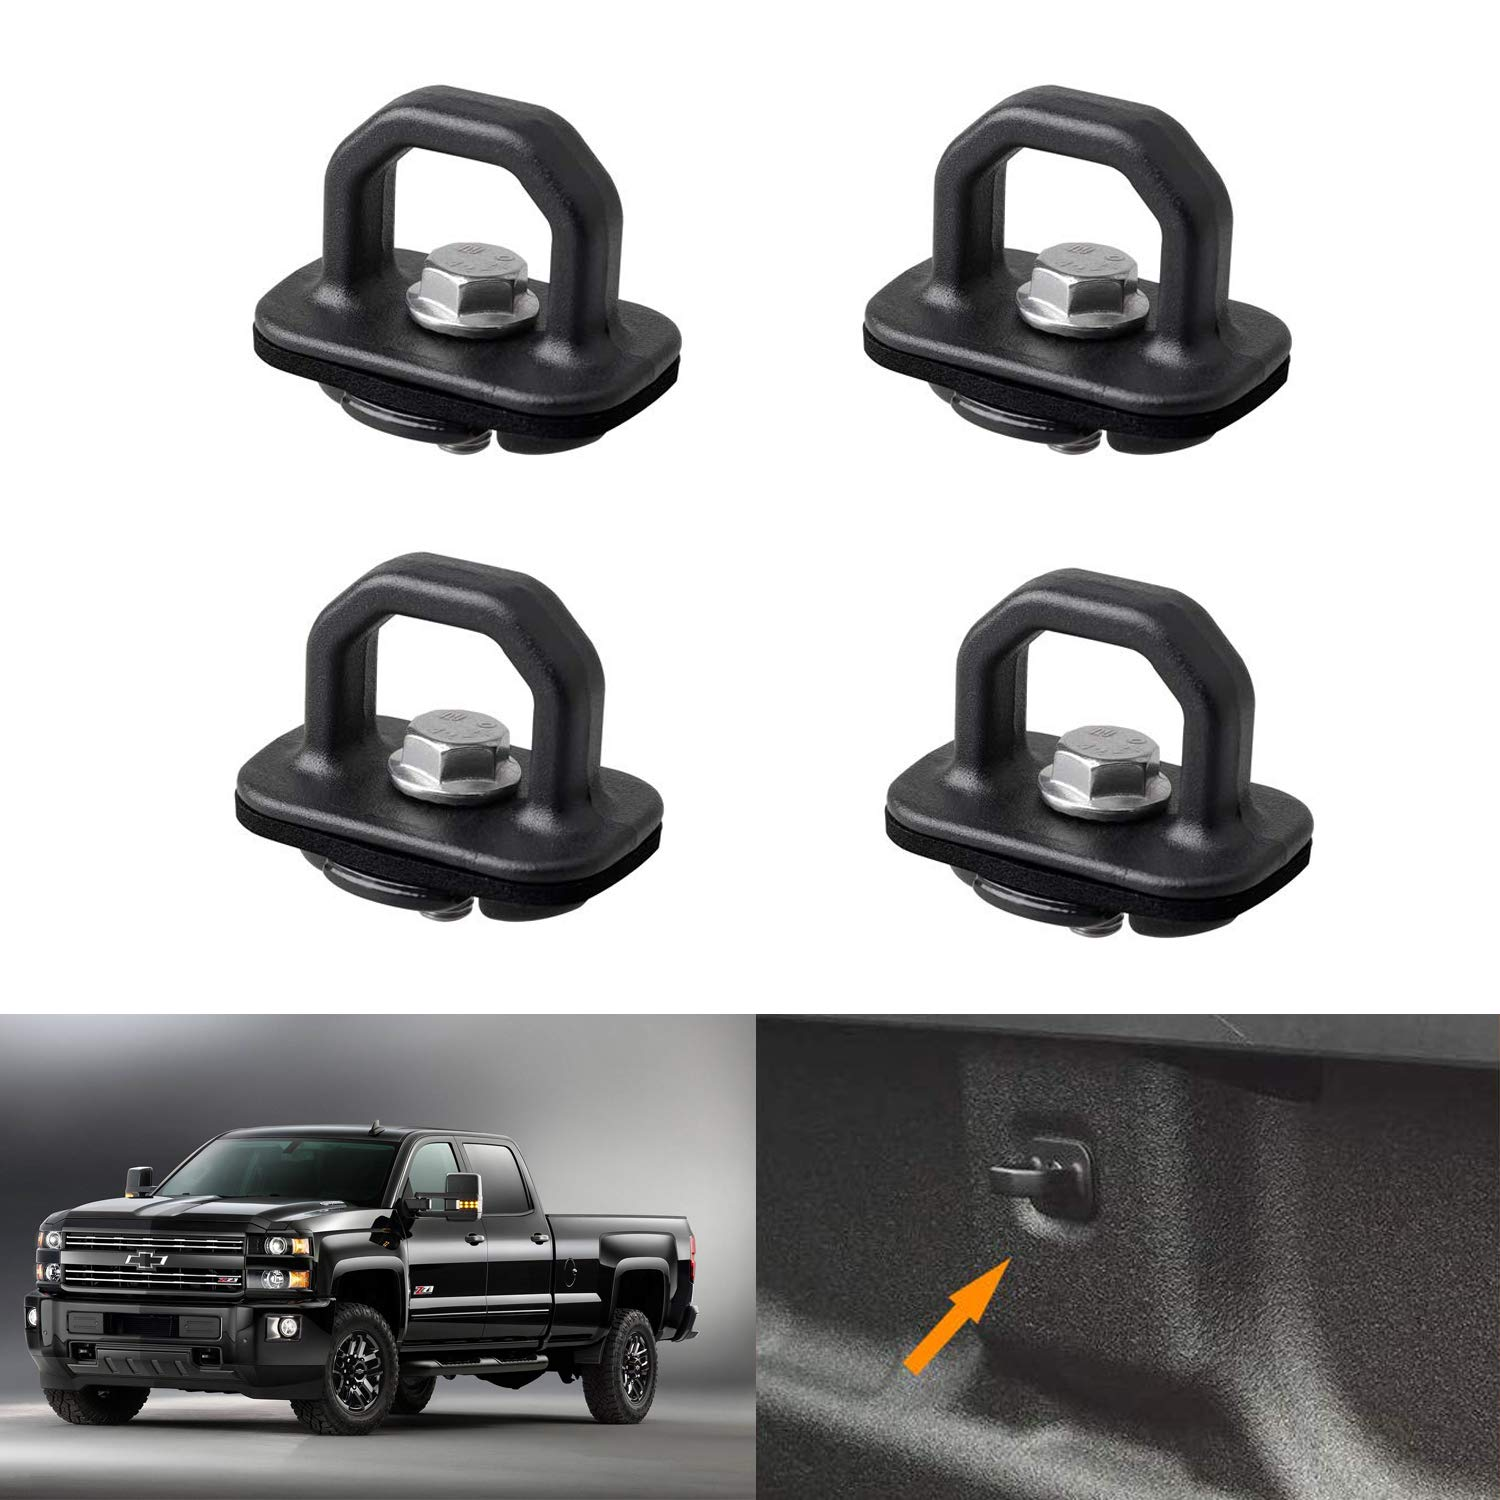 Bully WTD-823 Truck Bed Accessories Stainless Steel Cargo Tie-down Clamps Pair Dodge RAM Adjustable Rubber Mount To Fit Most Bed Rails Toyota Trucks  and Others Ford GMC Fits Most Chevy